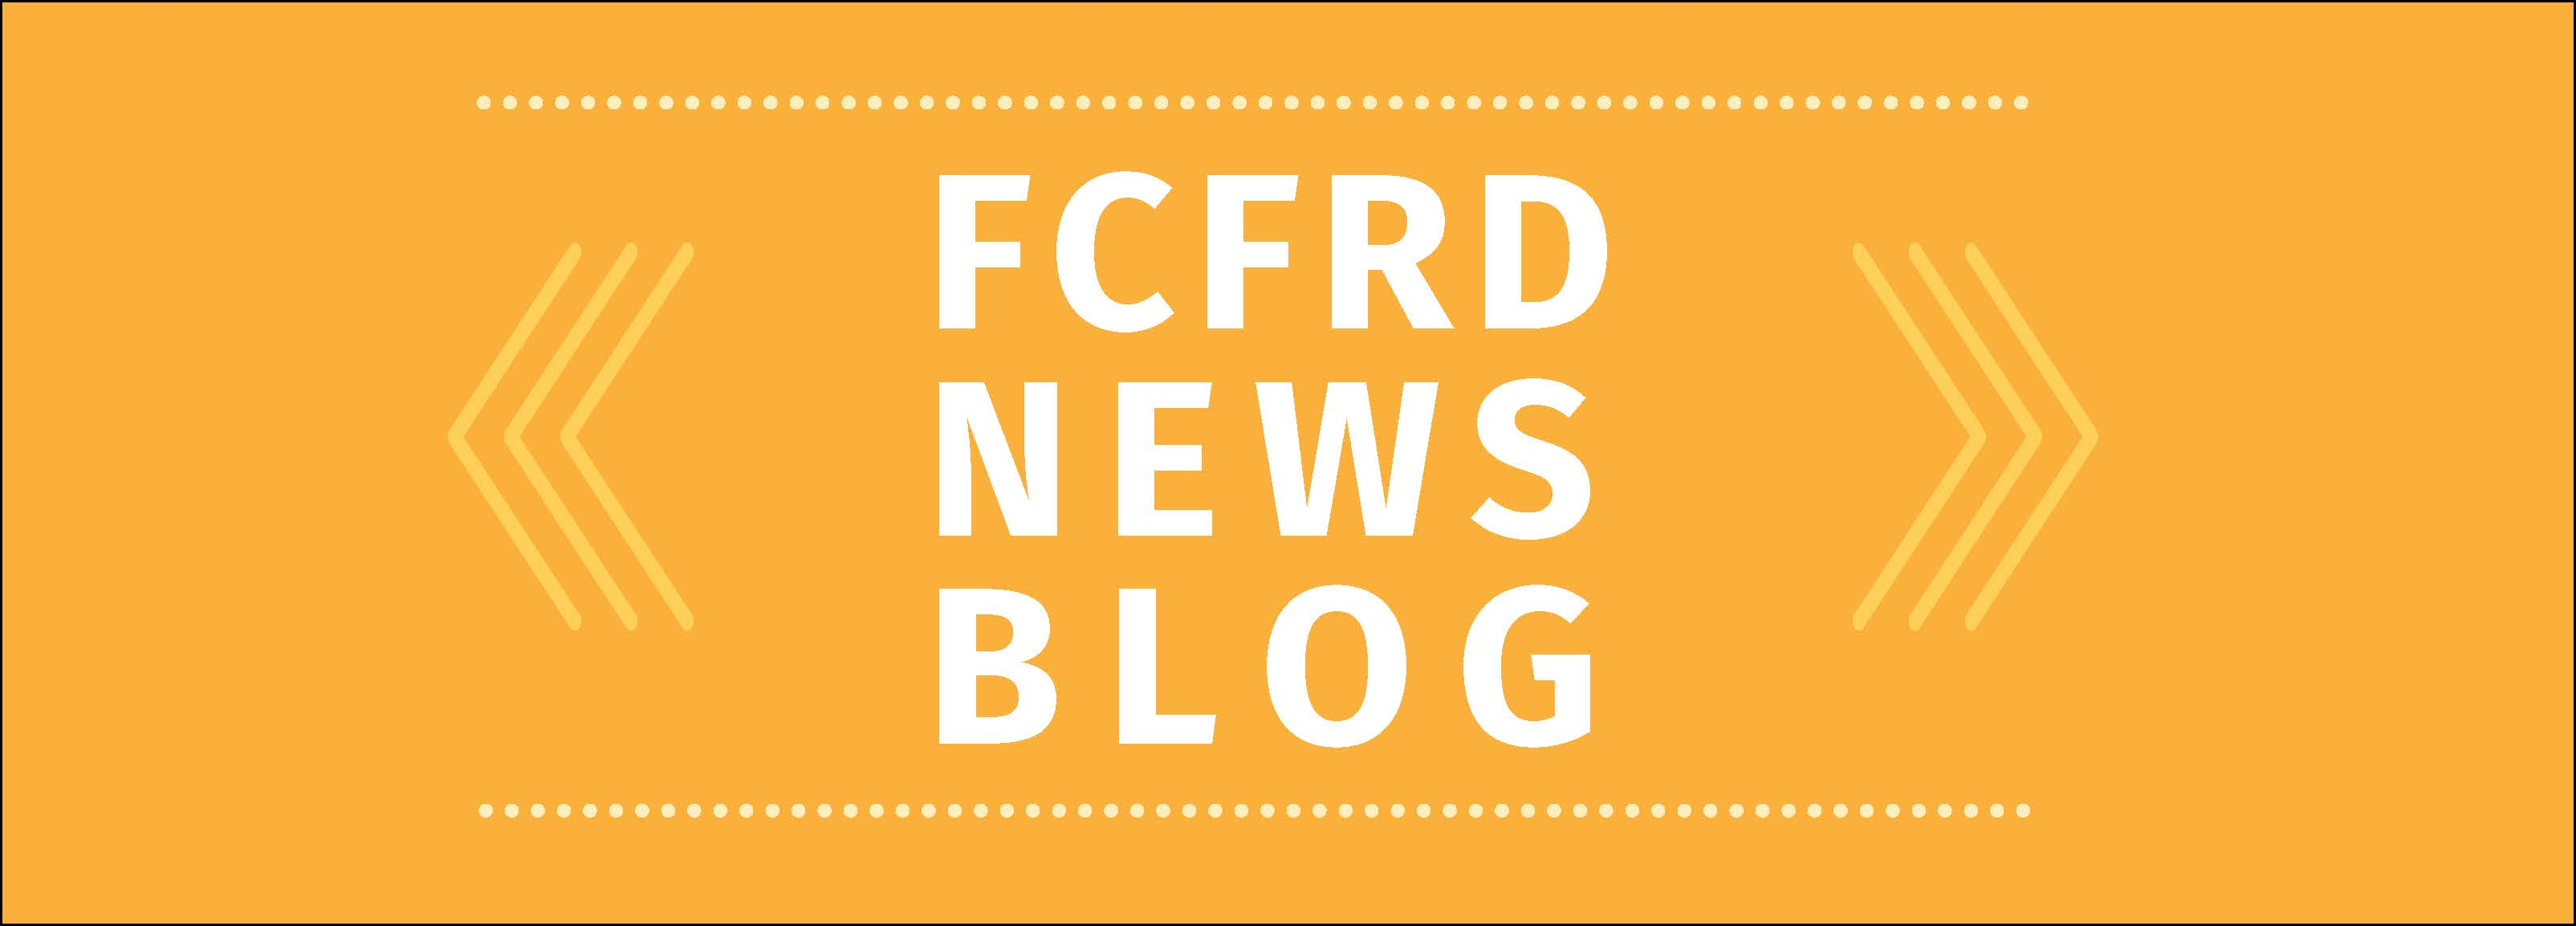 FCFRD News Blog